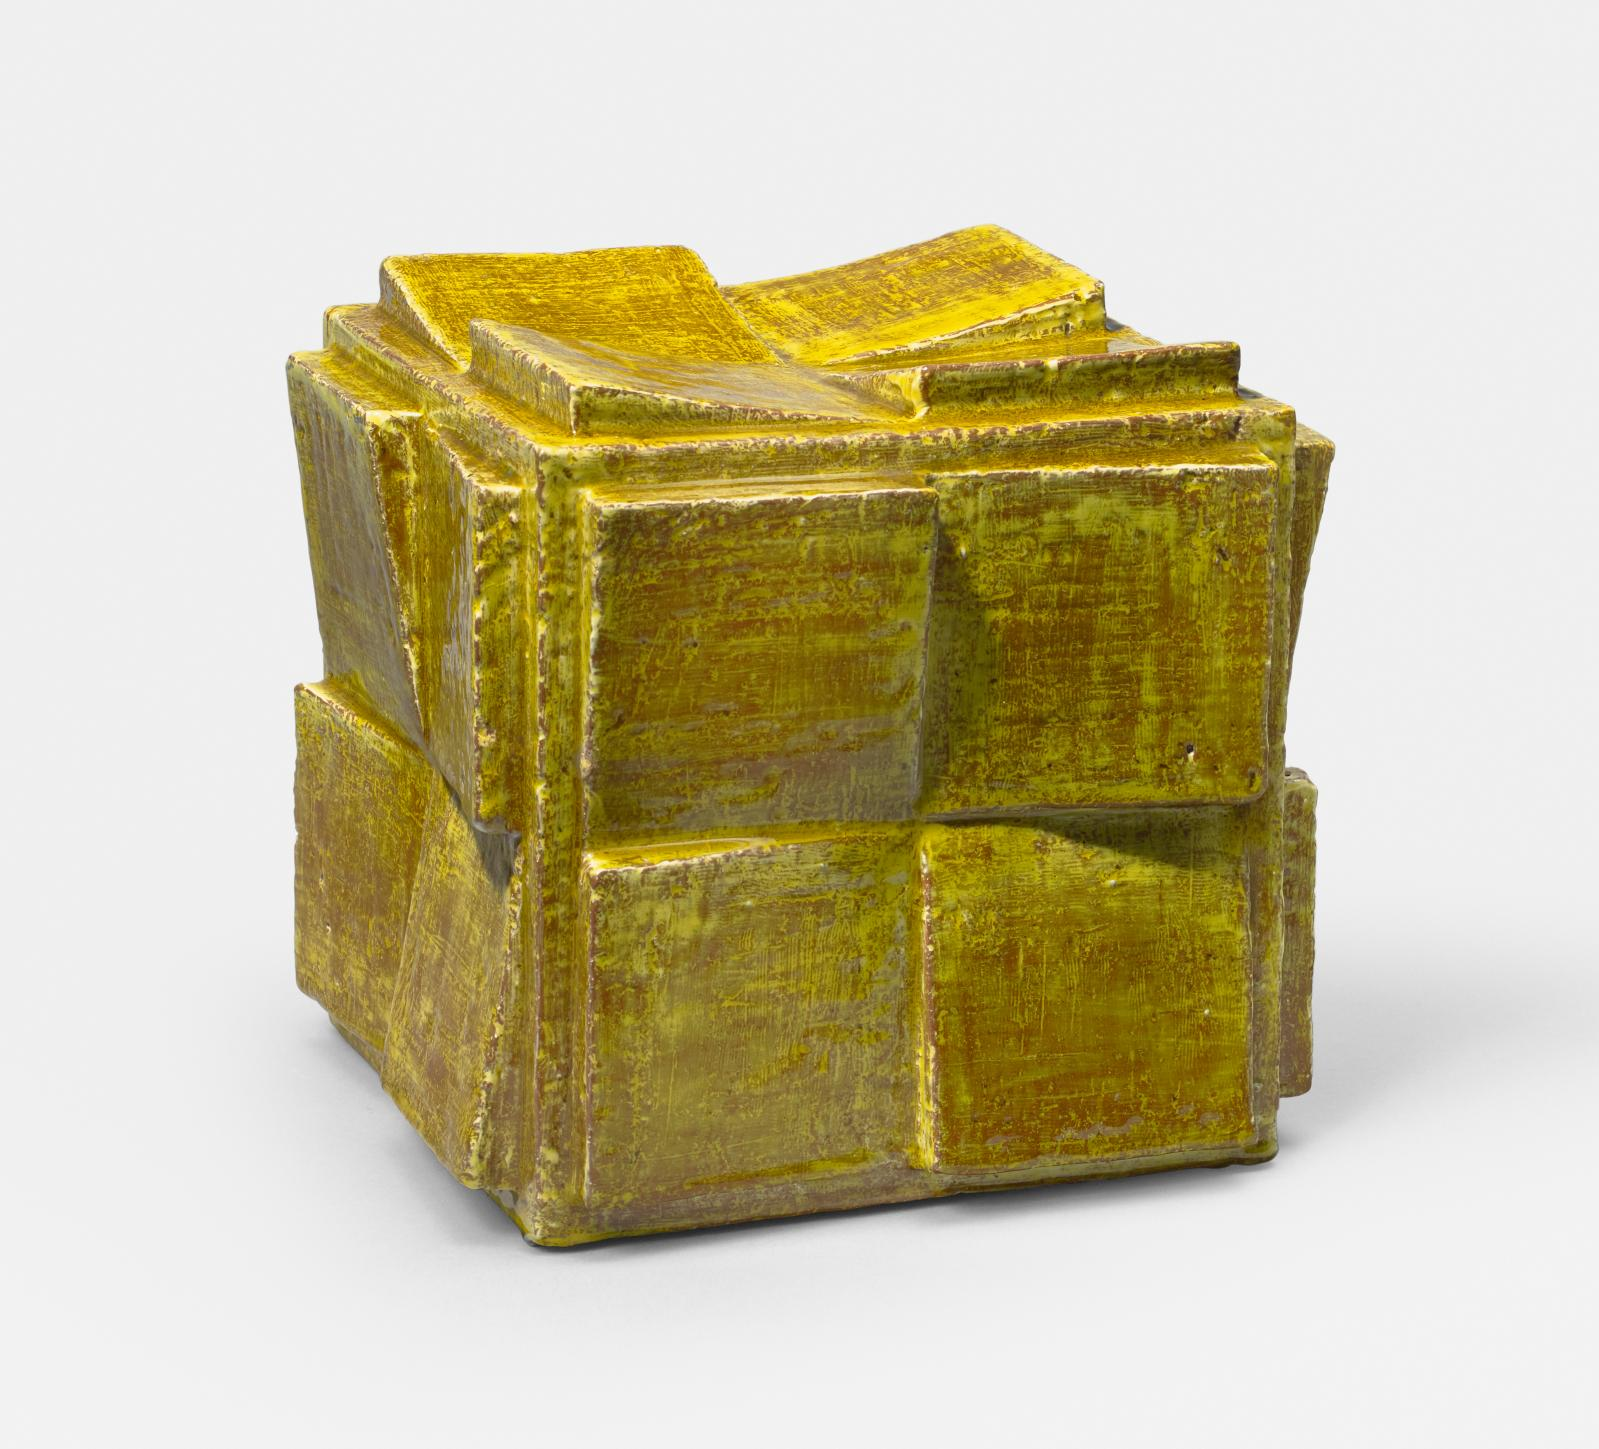 Suzanne Ramié (1907-1974), Madoura studio, Vallauris, yellow-glazed ceramic cube, 1970, 22.5 x 24 cm. Thomas Fritsch - Artrium.Courtesy of